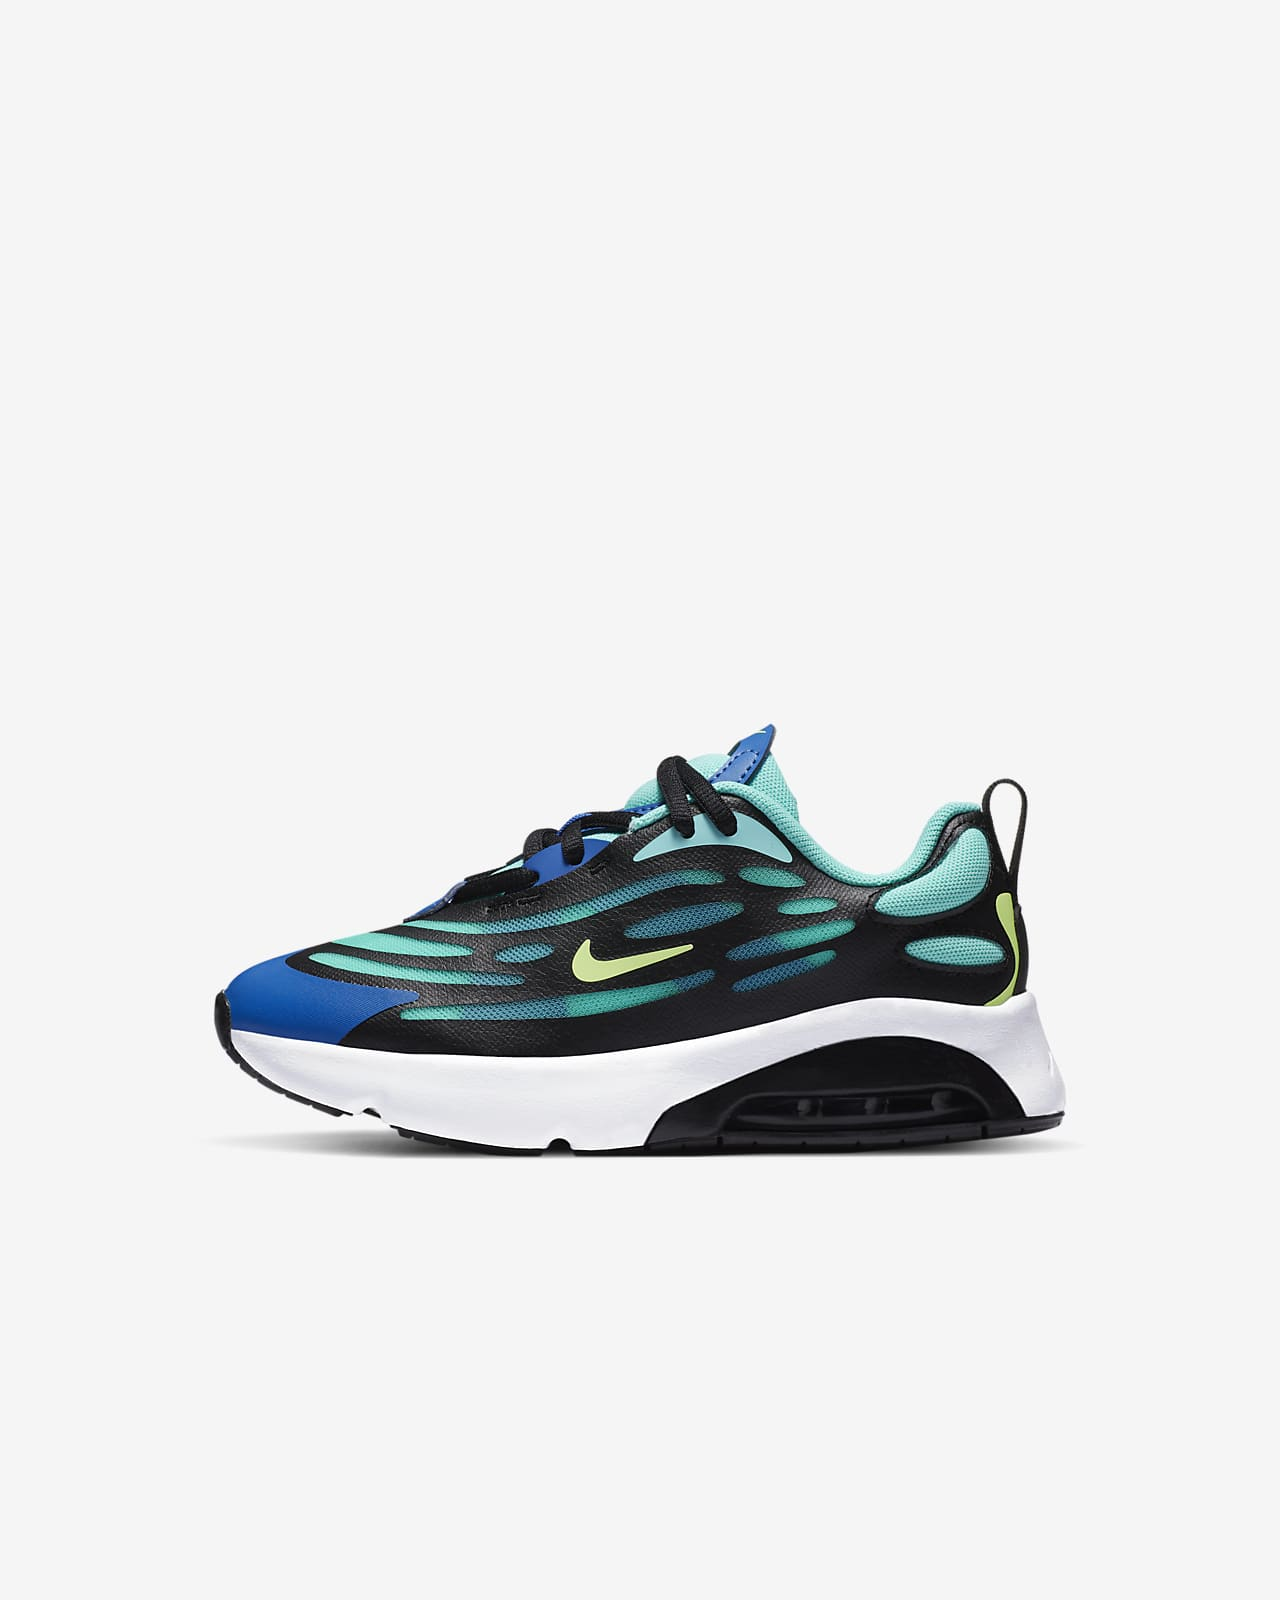 Nike Air Max Exosense Little Kids' Shoe